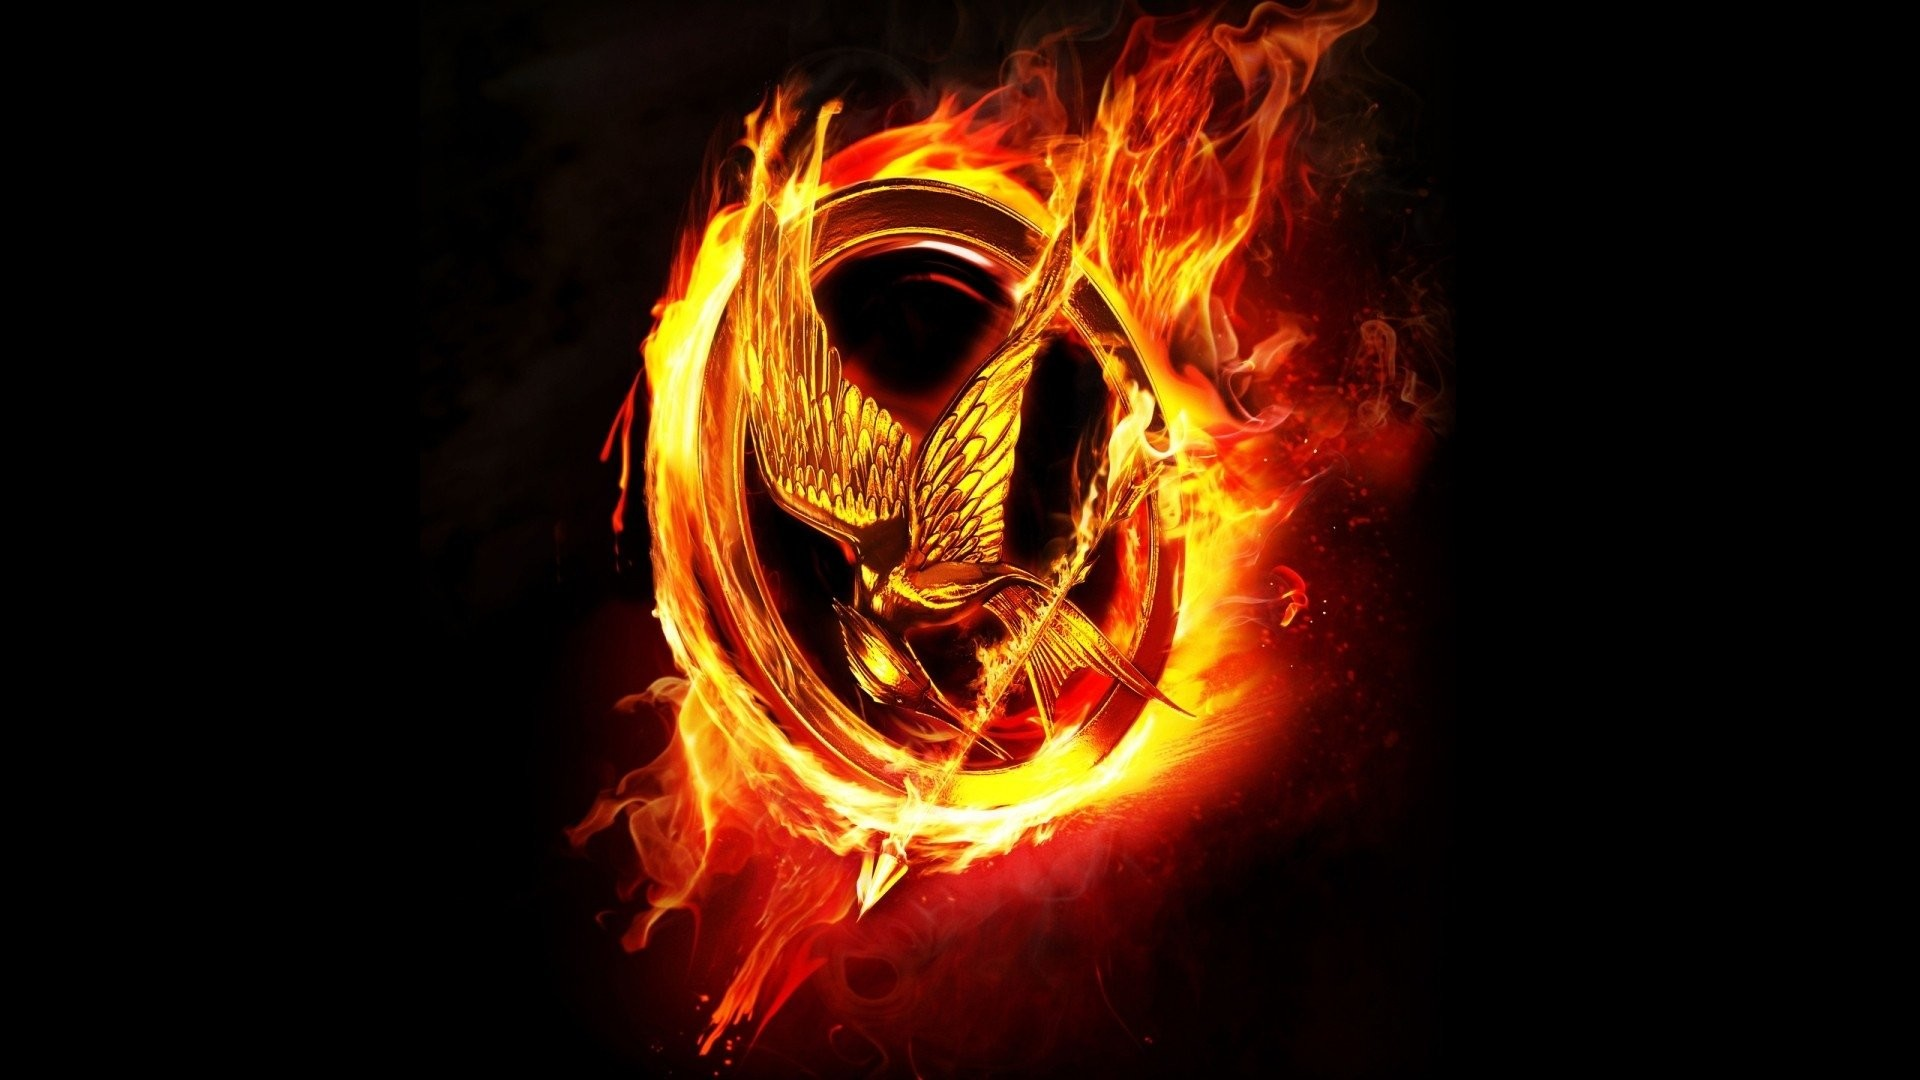 1920x1080 Movie - The Hunger Games Black Fire Flame Mockingjay Wallpaper